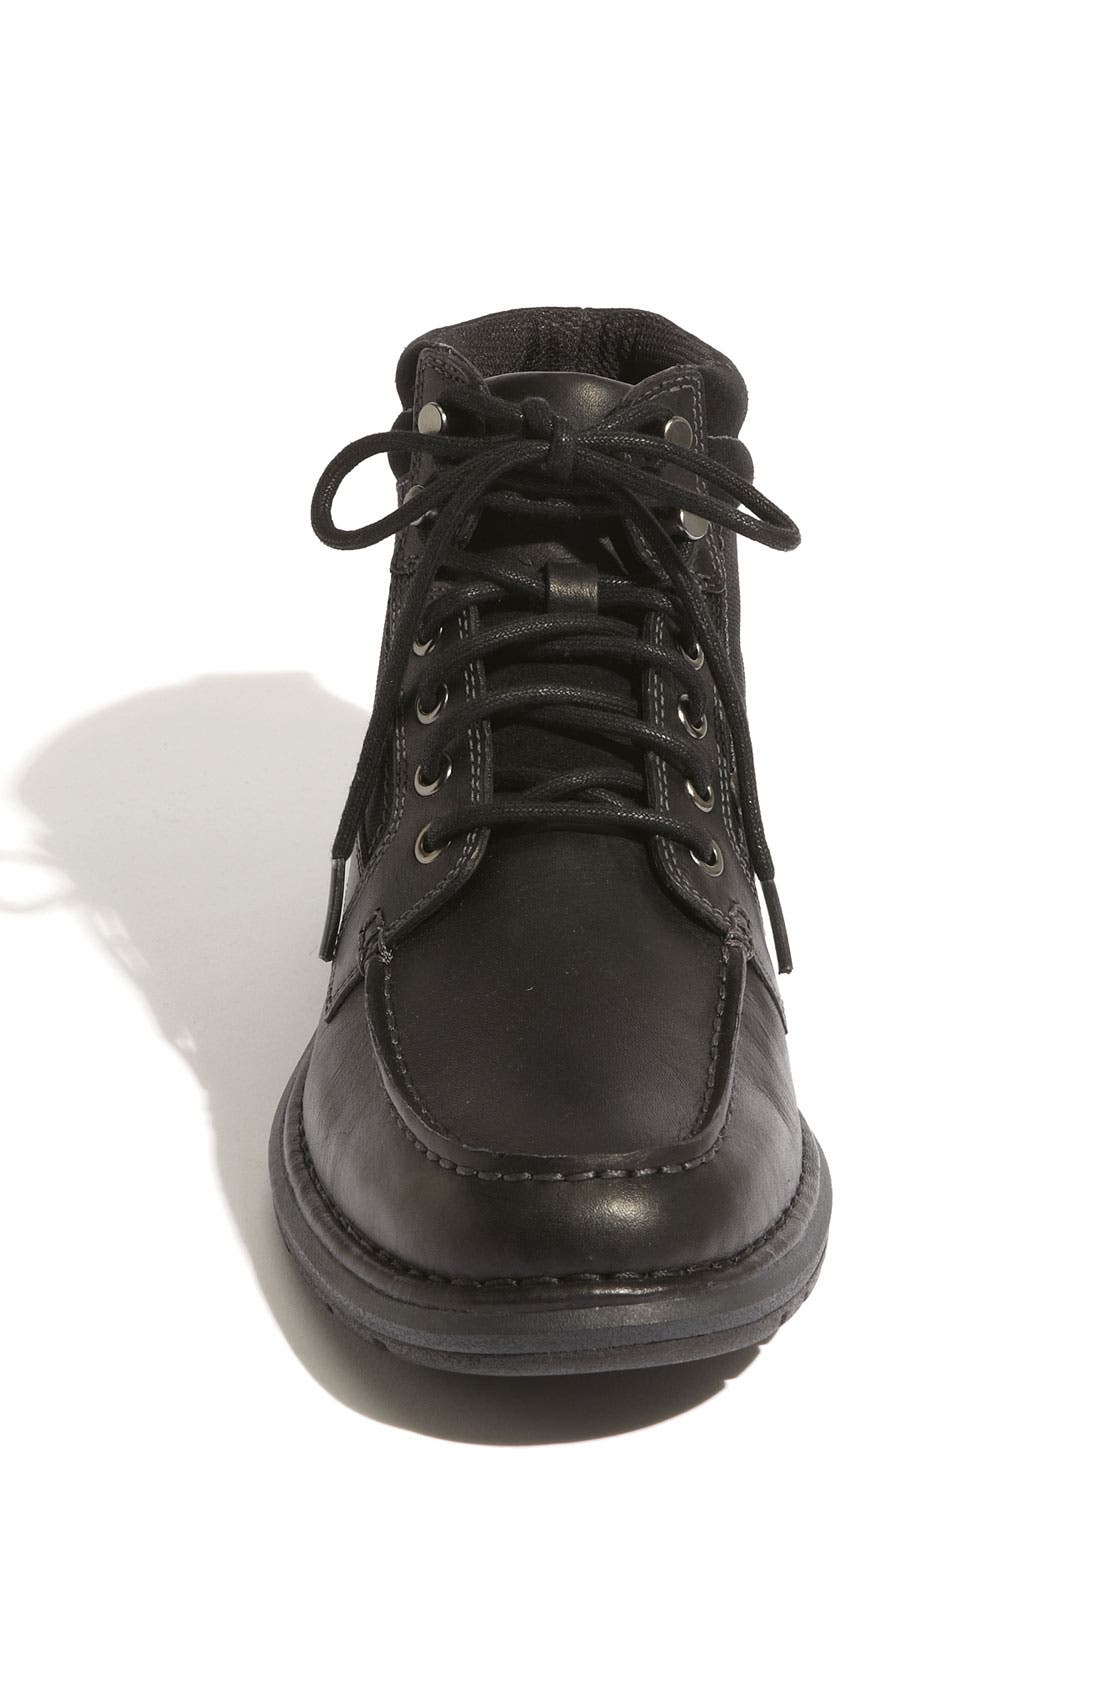 'Concord' Ankle Boot,                             Alternate thumbnail 3, color,                             001